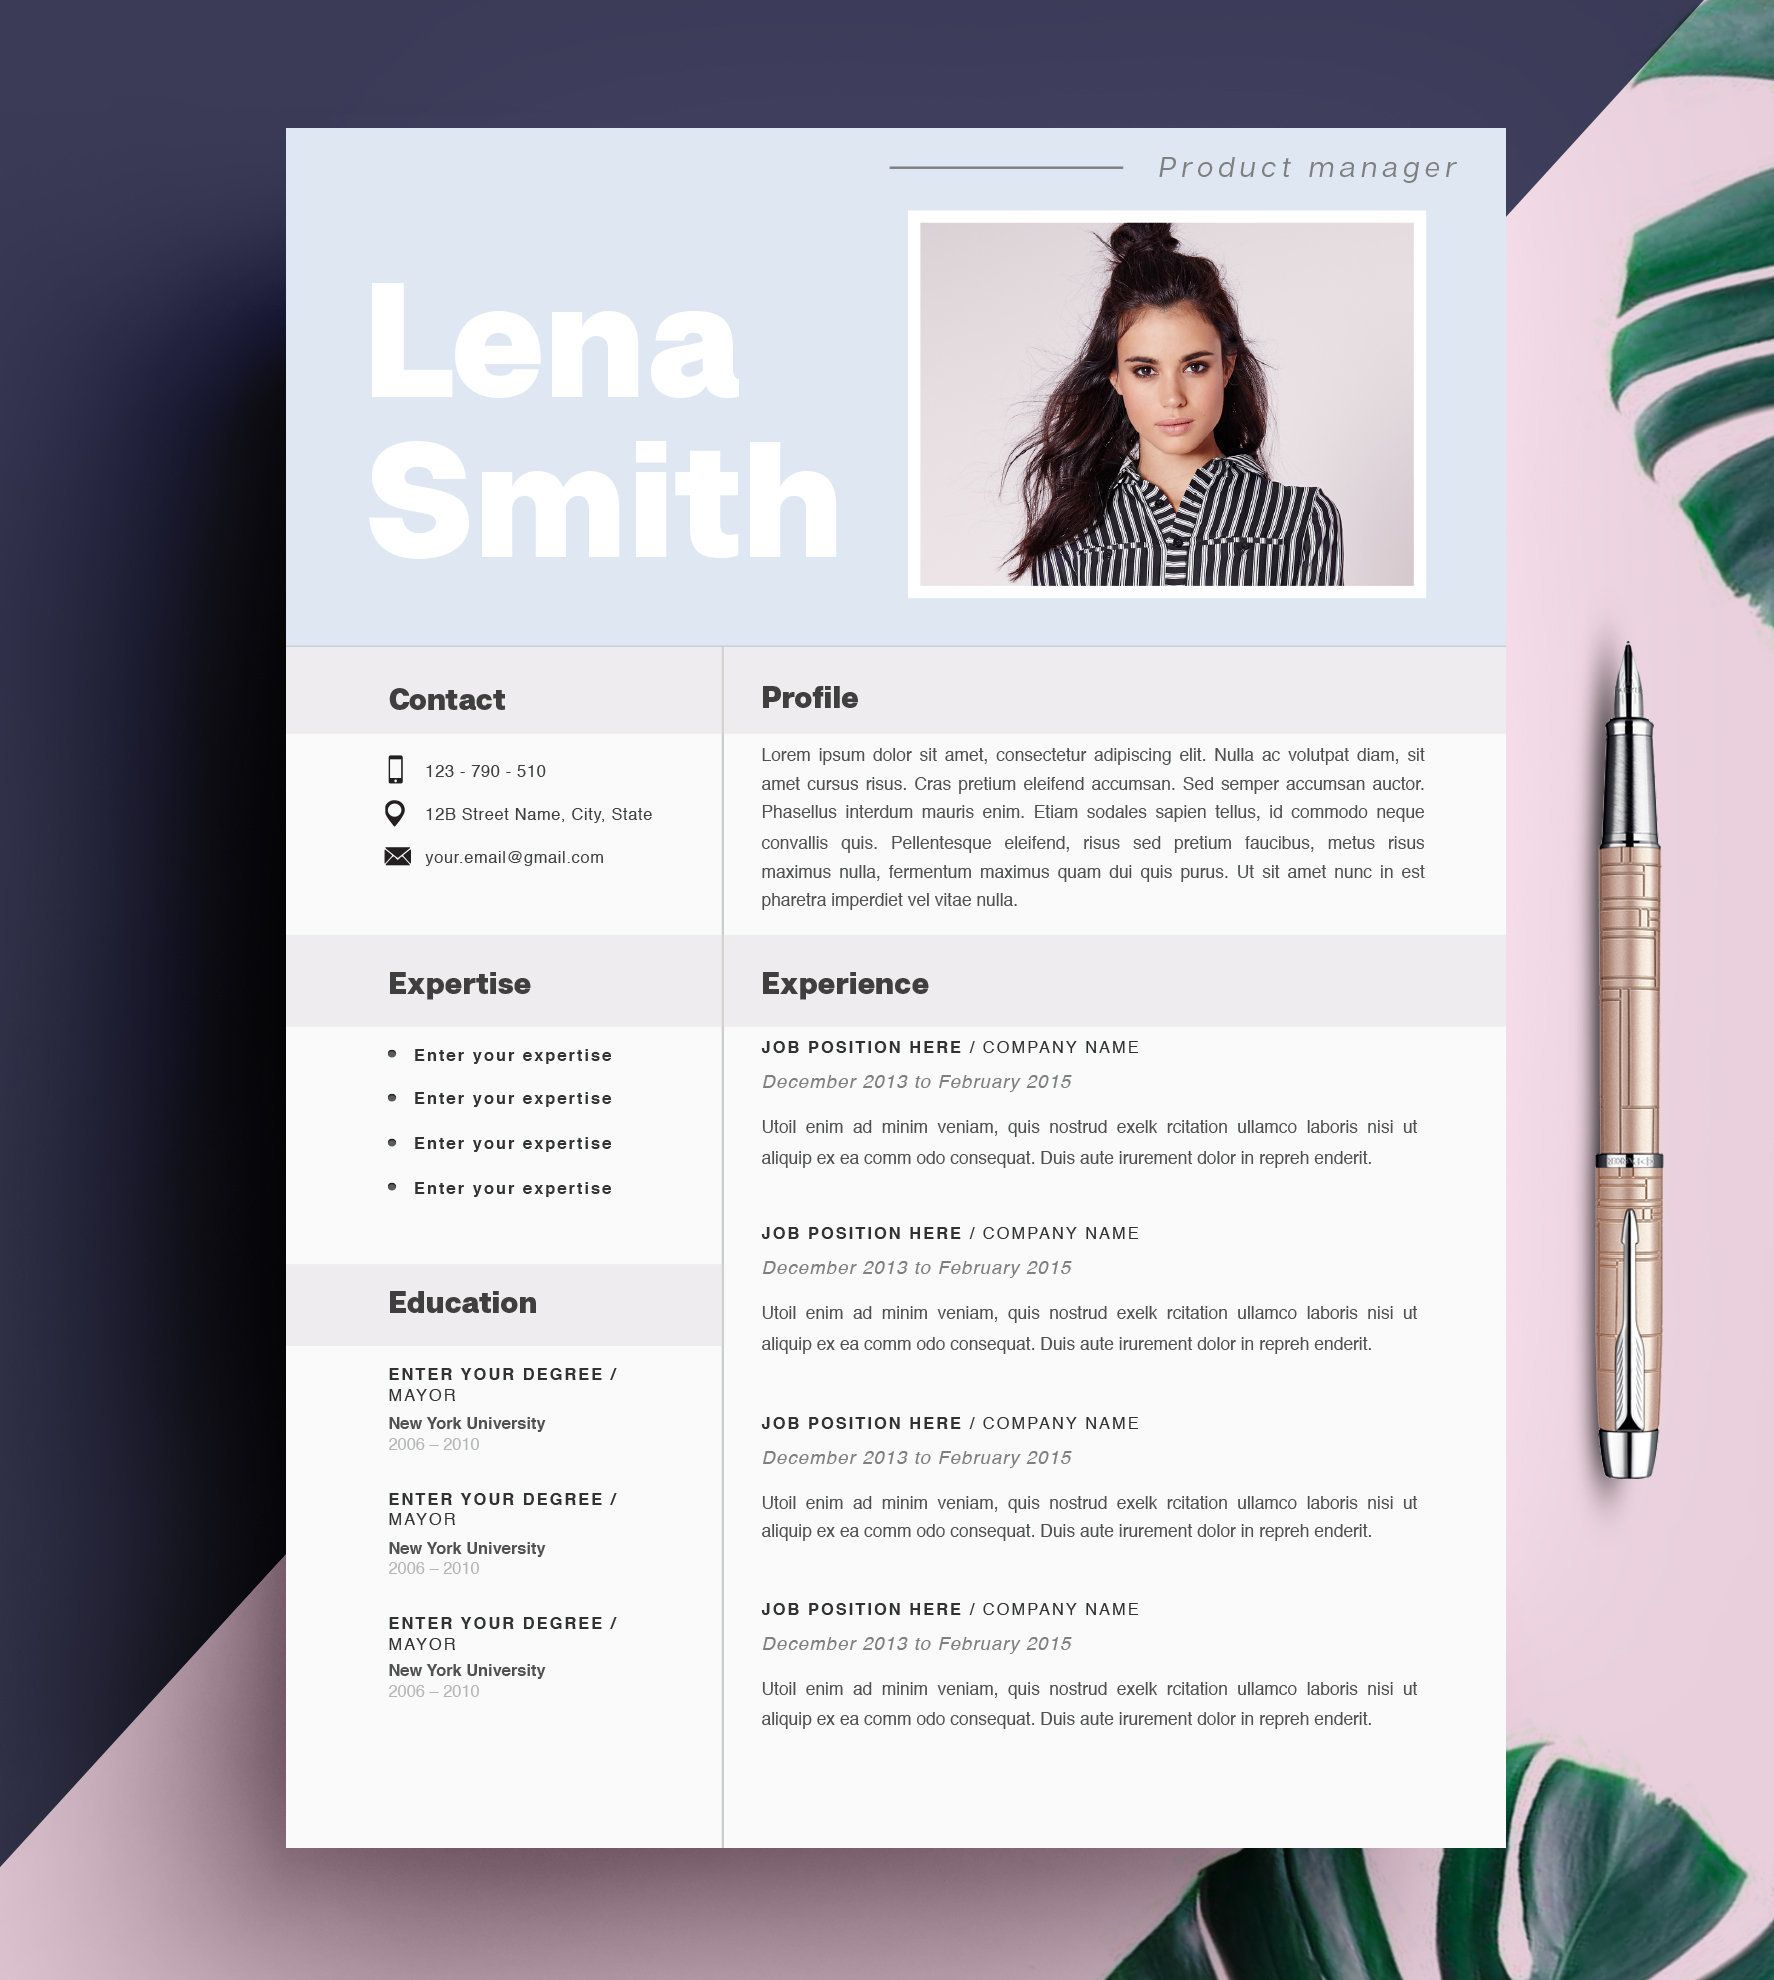 new creative resume template, cv instant good examples graphic designer description for download template word